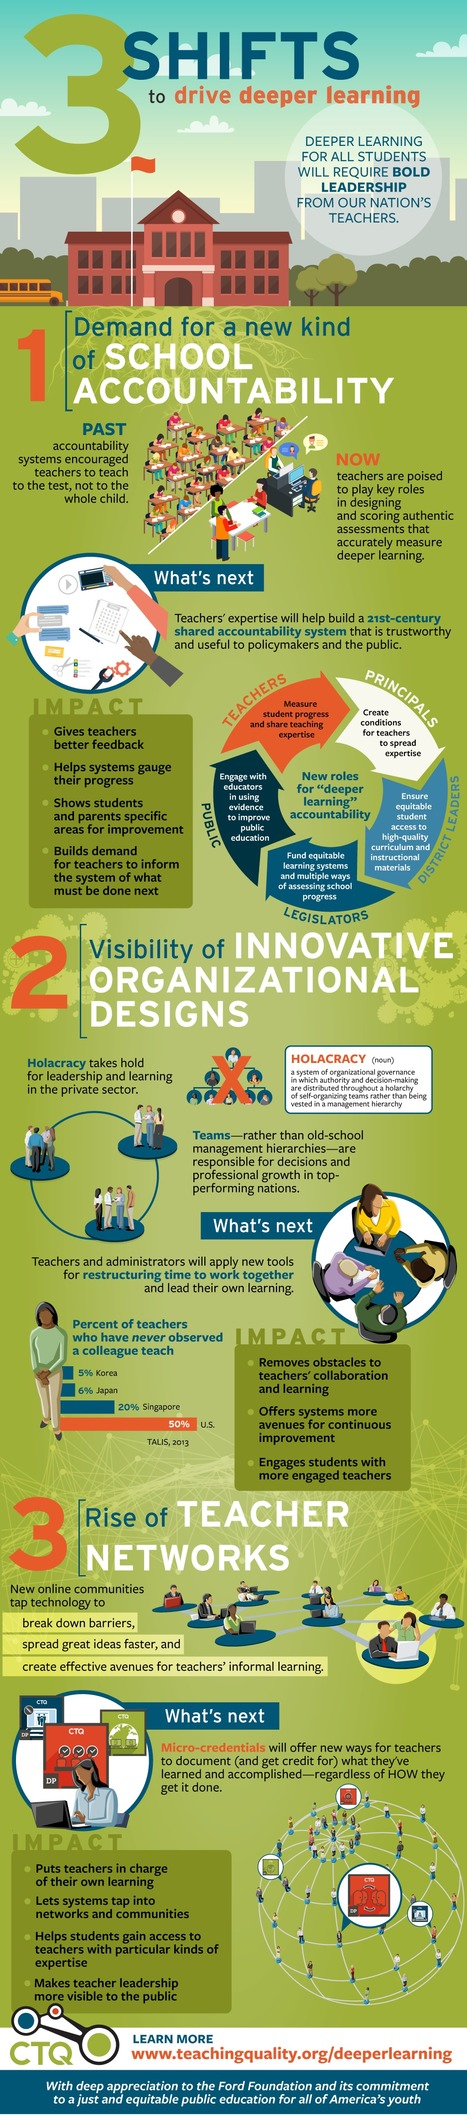 Teacher leadership & deeper learning for all students [#Infographic] | #CTQ #CTQCollab | To learn or not to learn? | Scoop.it